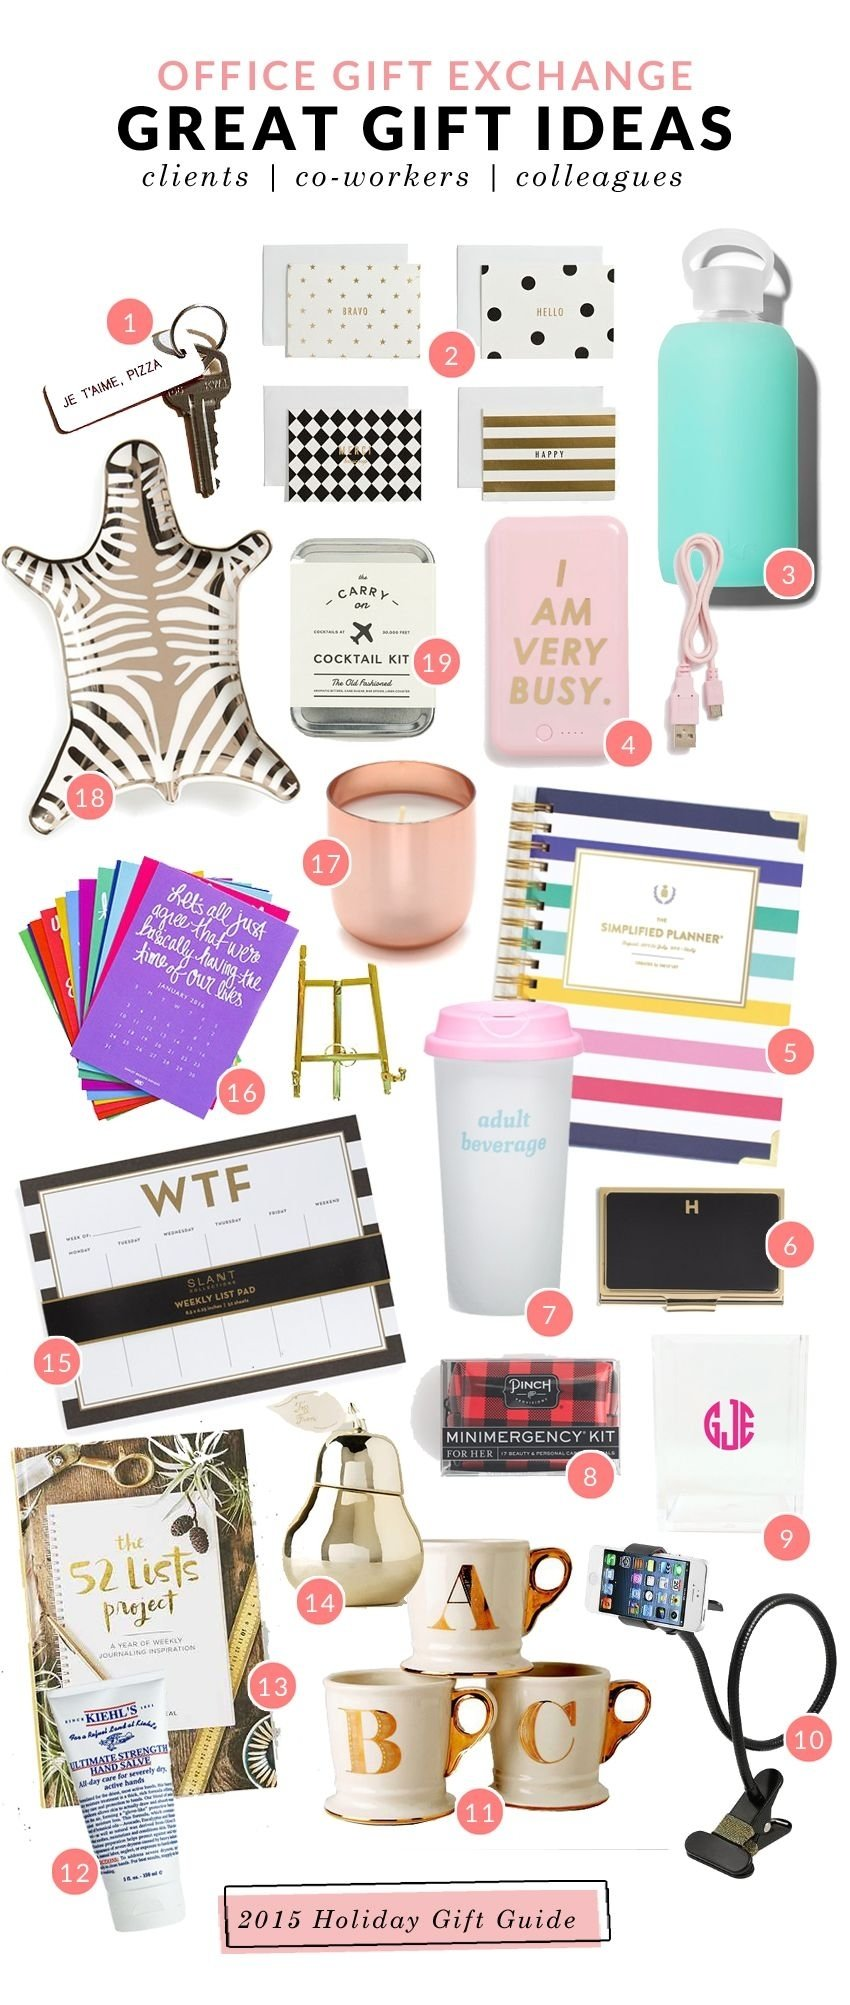 10 Unique Great Secret Santa Gift Ideas great gift ideas for co workers clients colleagues most of these 1